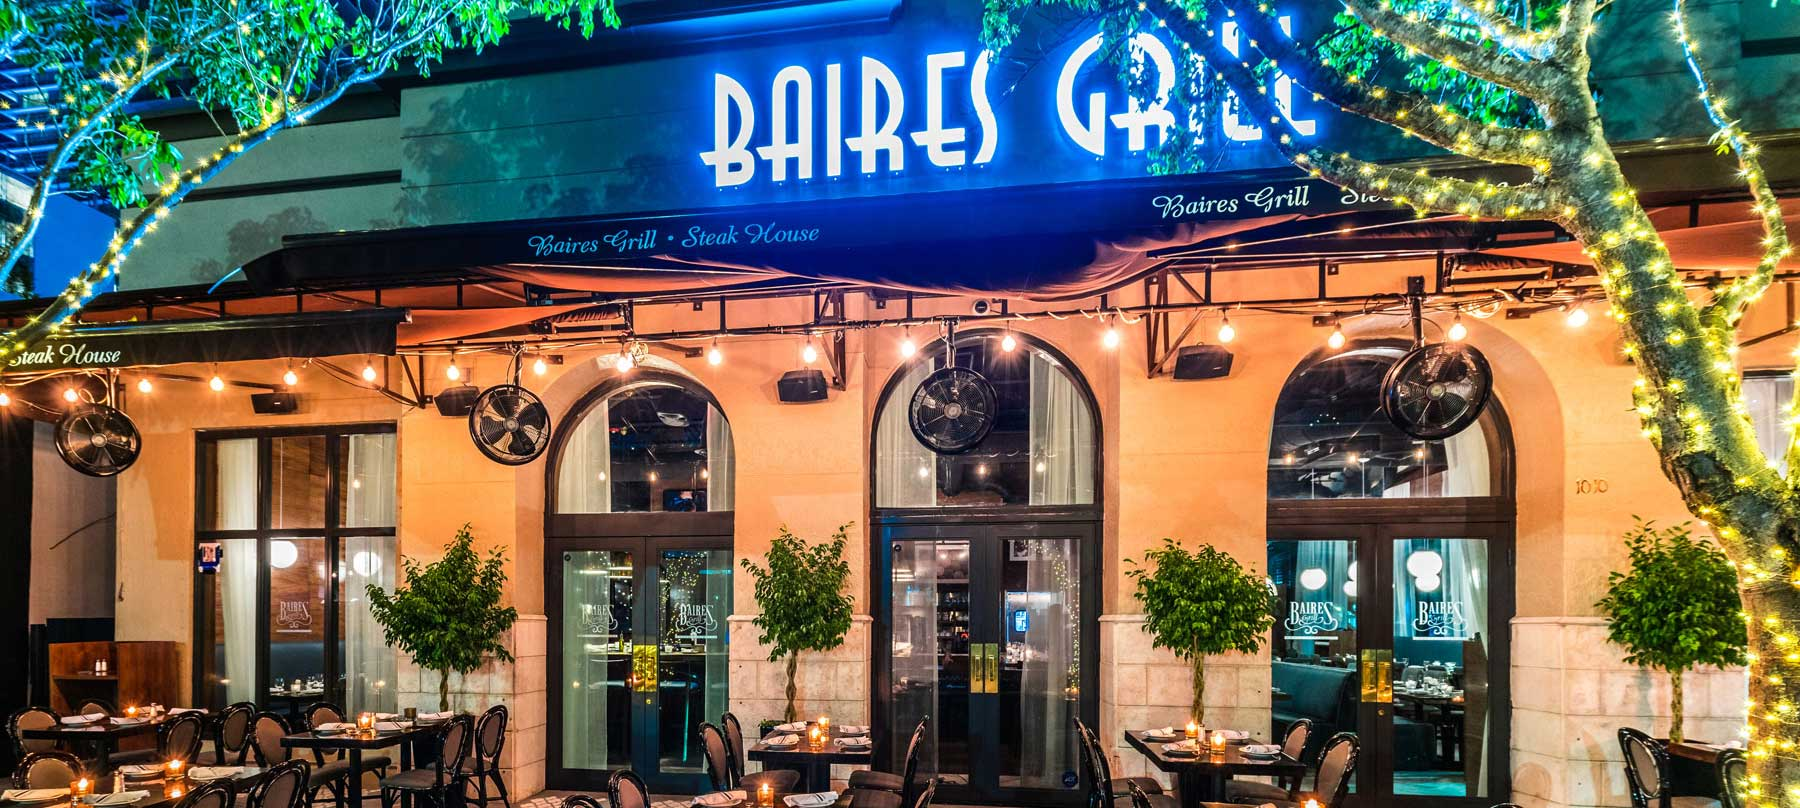 Baires Grill Argentinean Steakhouse